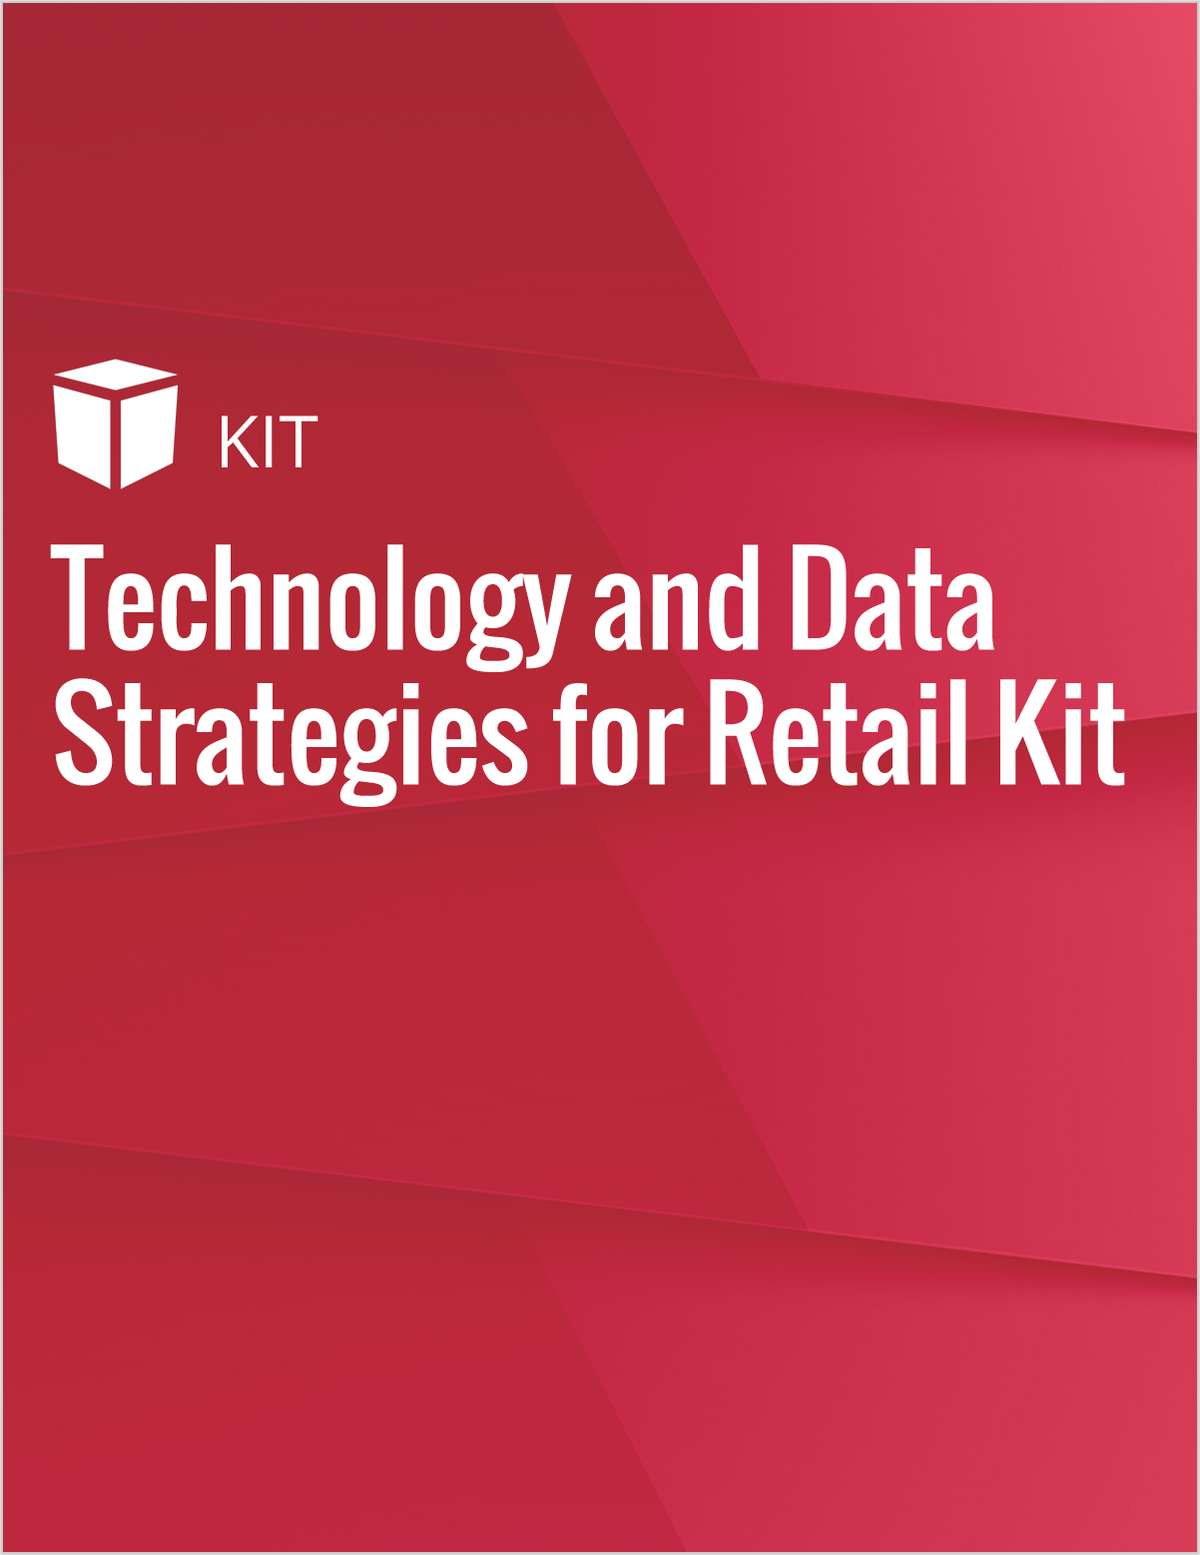 Technology and Data Strategies for Retail Kit